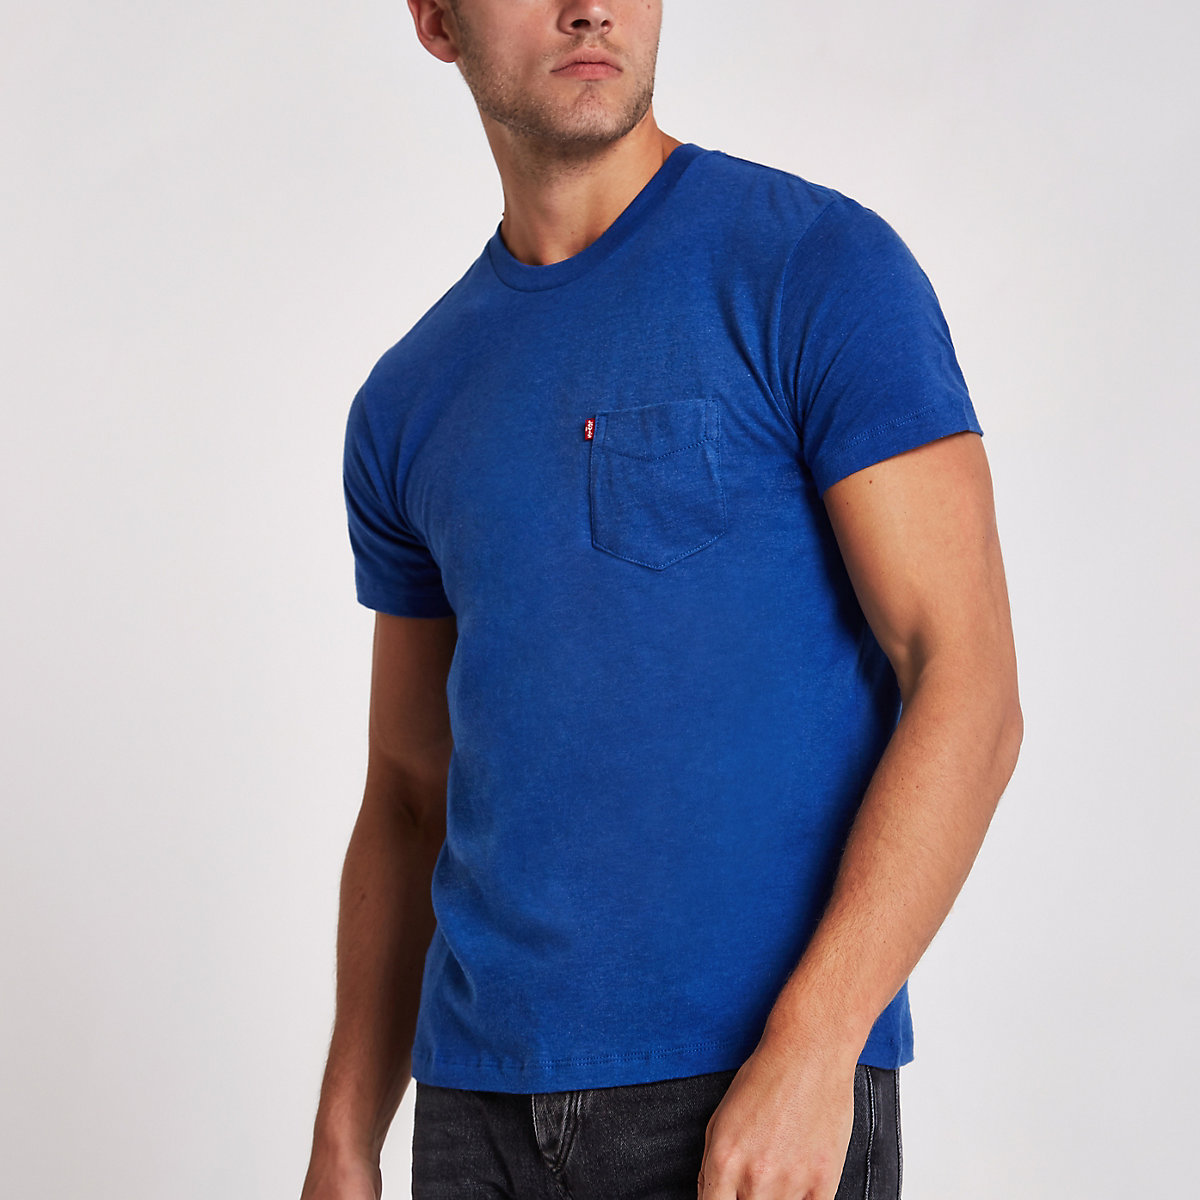 Levi's blue short sleeve pocket T-shirt